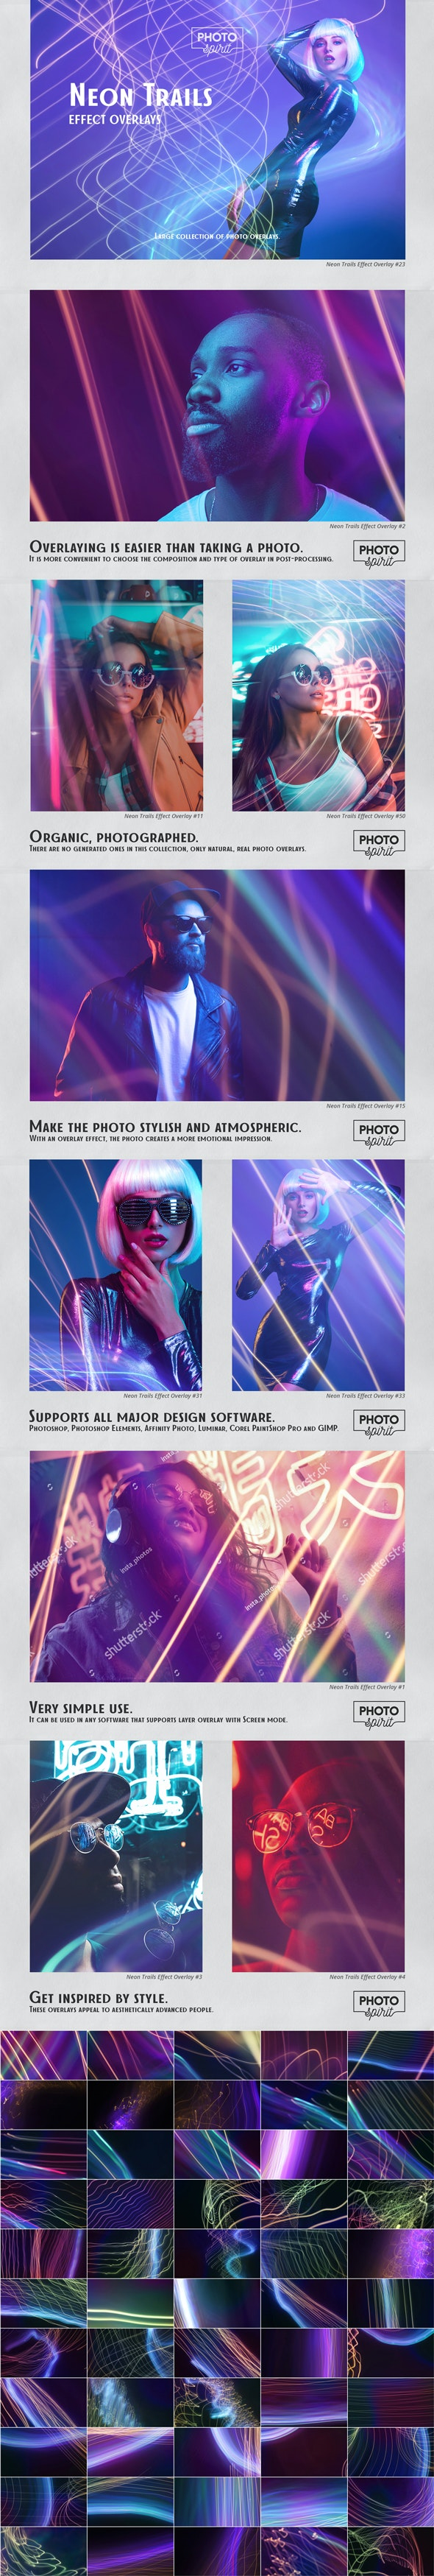 Neon Trails Overlays Effect - Photoshop Add-ons